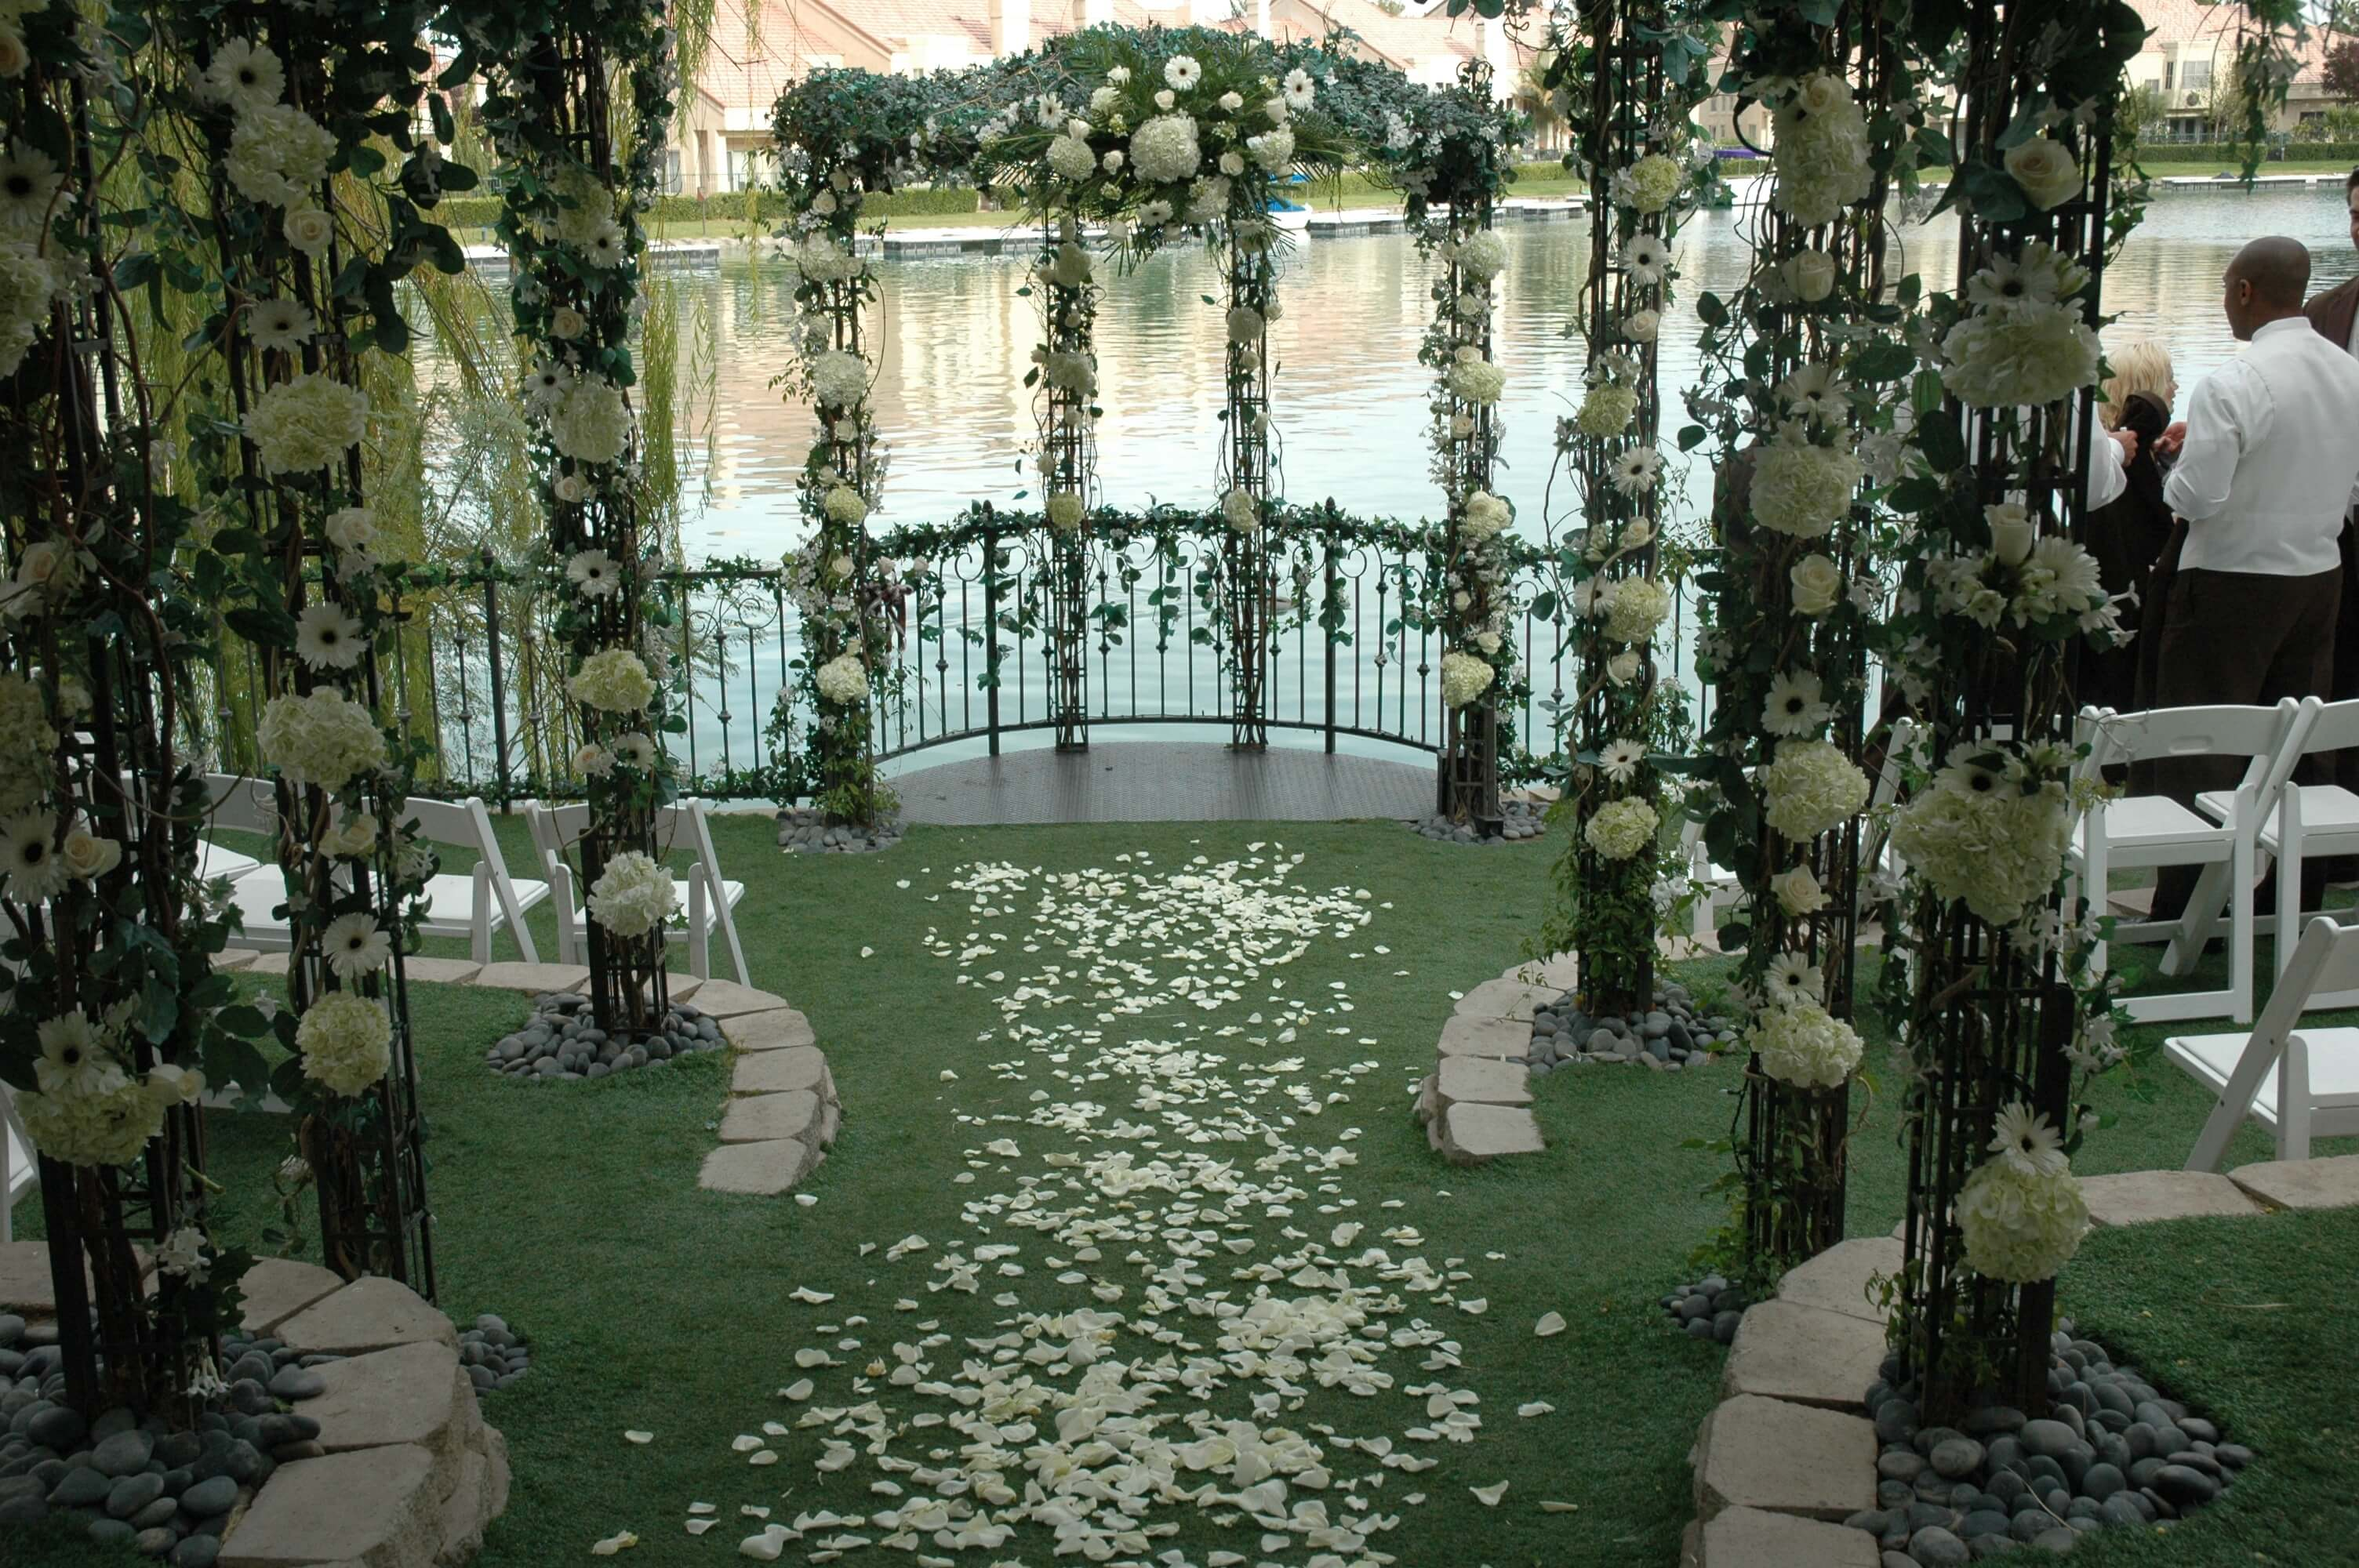 Heritage Garden Whimsical Ceremony Package Up To 100 Guests Included Only